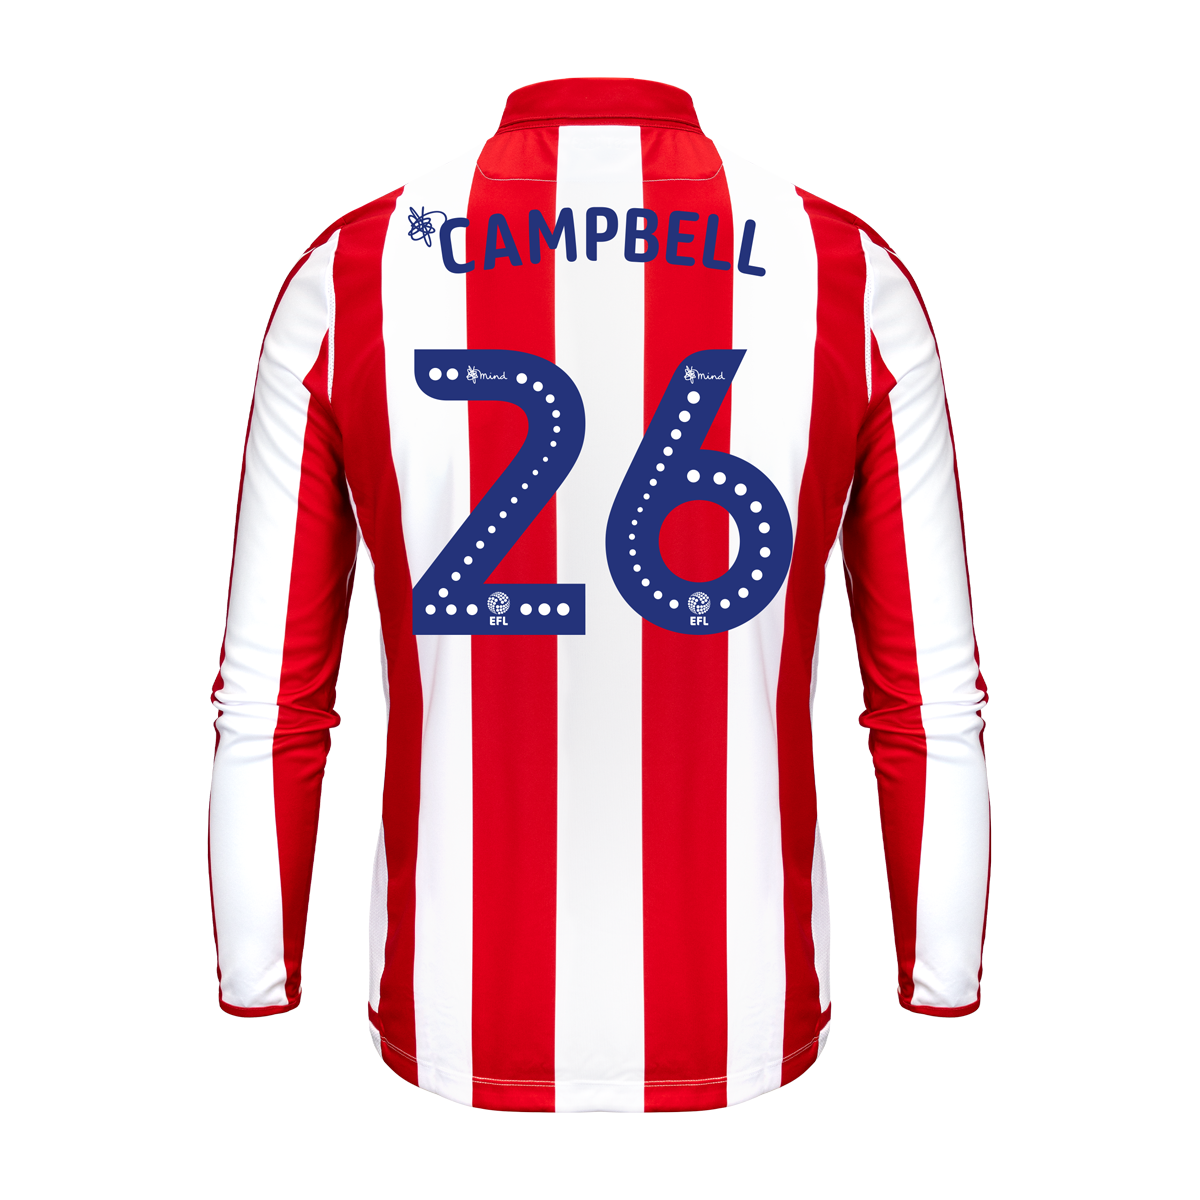 2019/20 Adult Home LS Shirt - Campbell